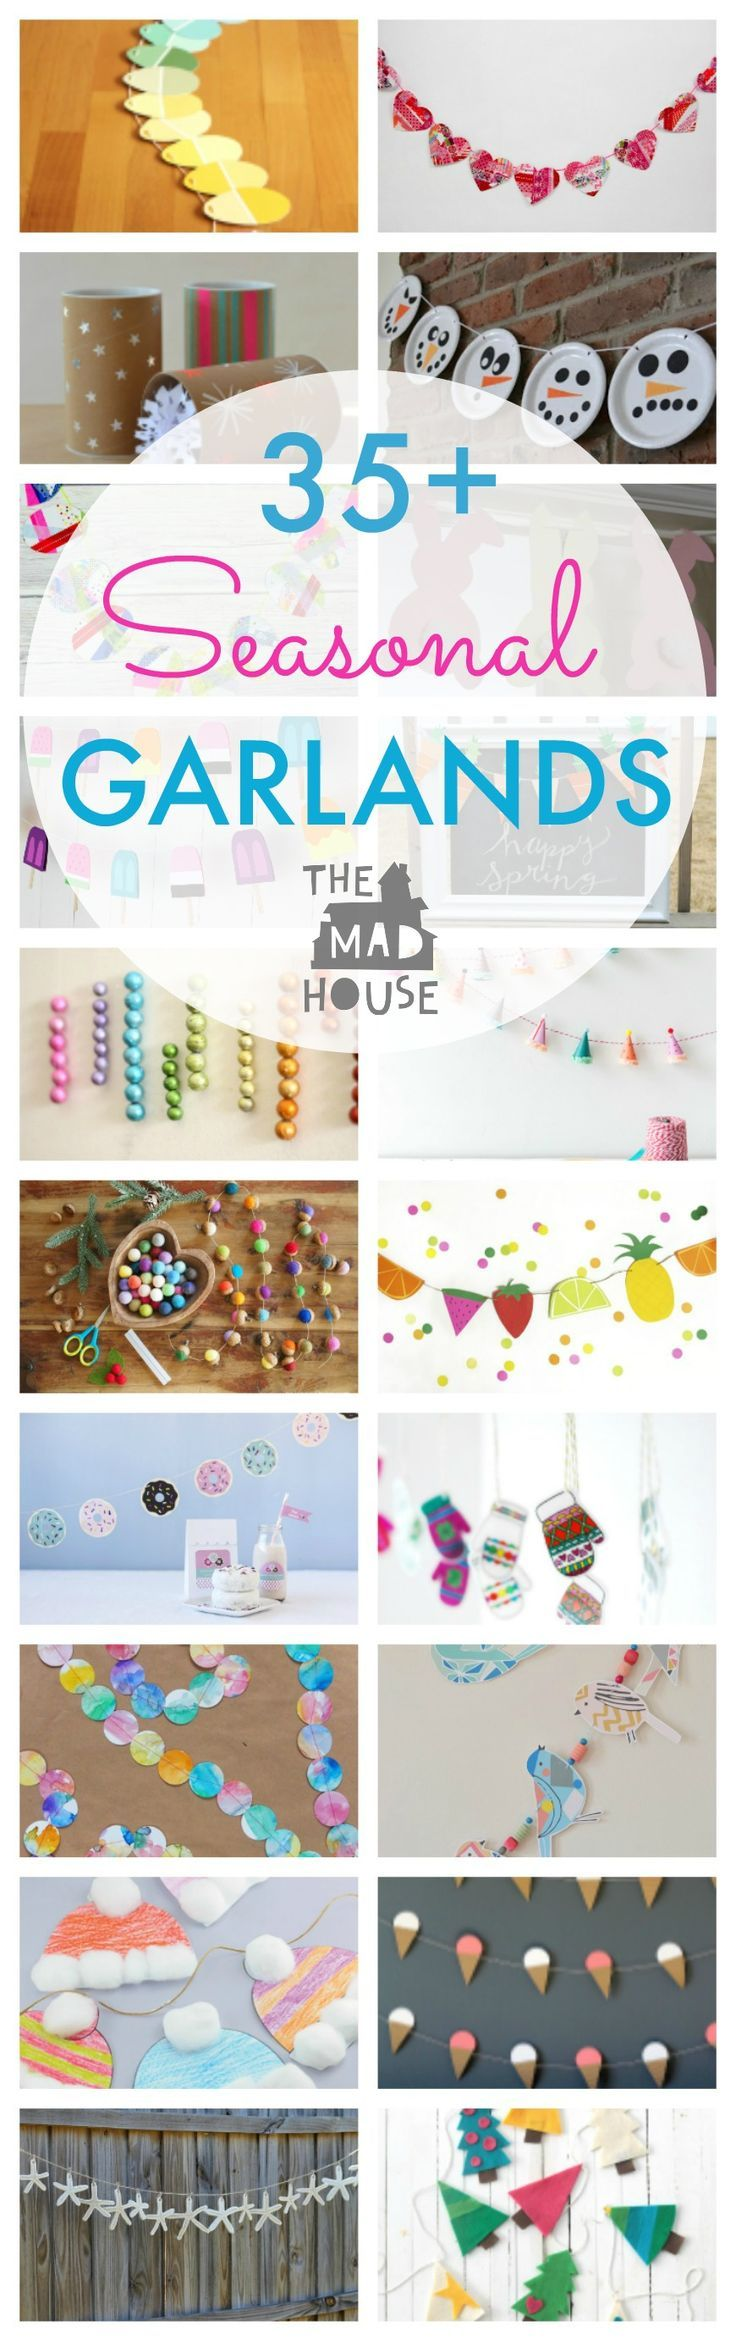 Simple Seasonal DIY Garlands. Celebrate the seasons with a selection of fab garlands that you can make yourself or with the kids.